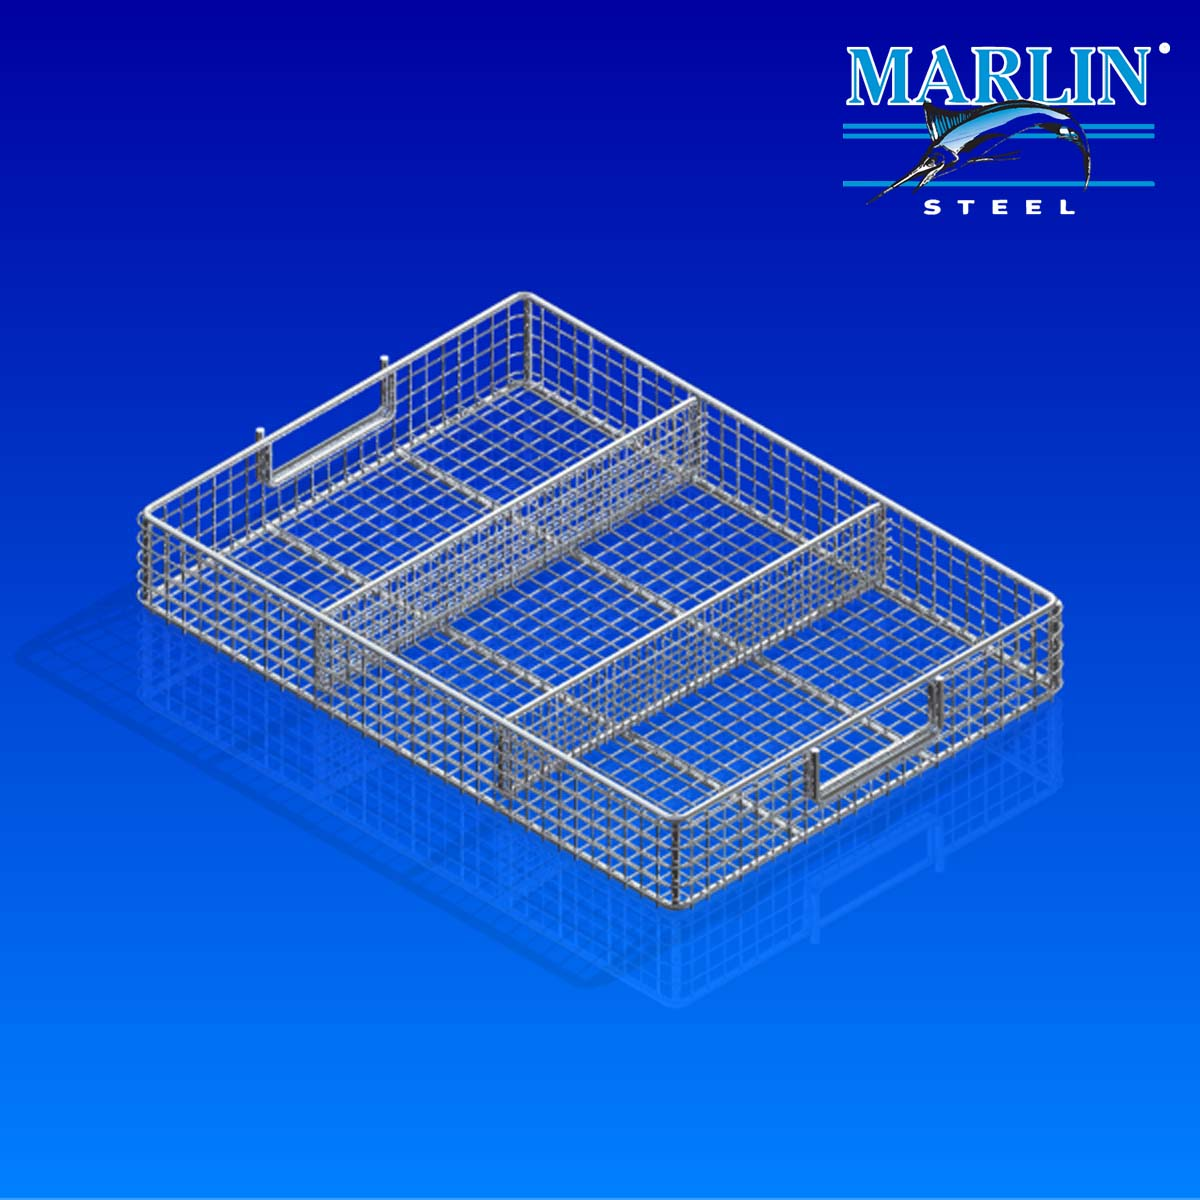 The client found this basket design to be very close to what they needed, so it served as the basis for the custom basket design.